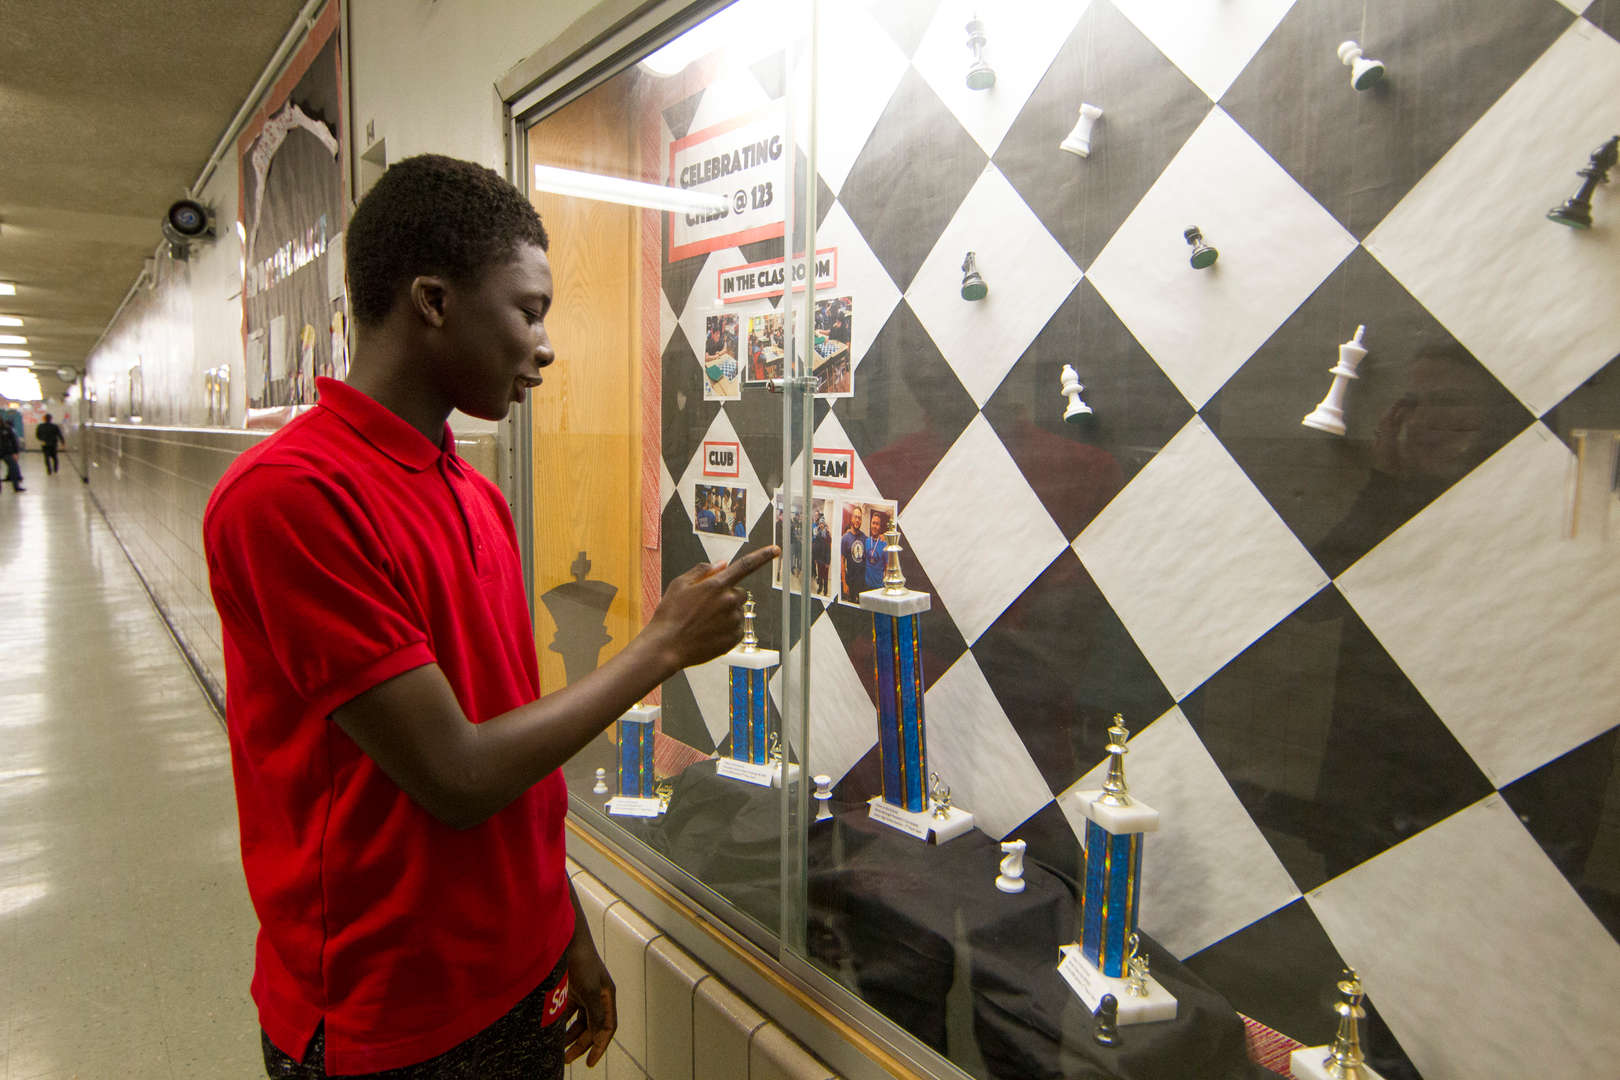 Chess player showing trophy